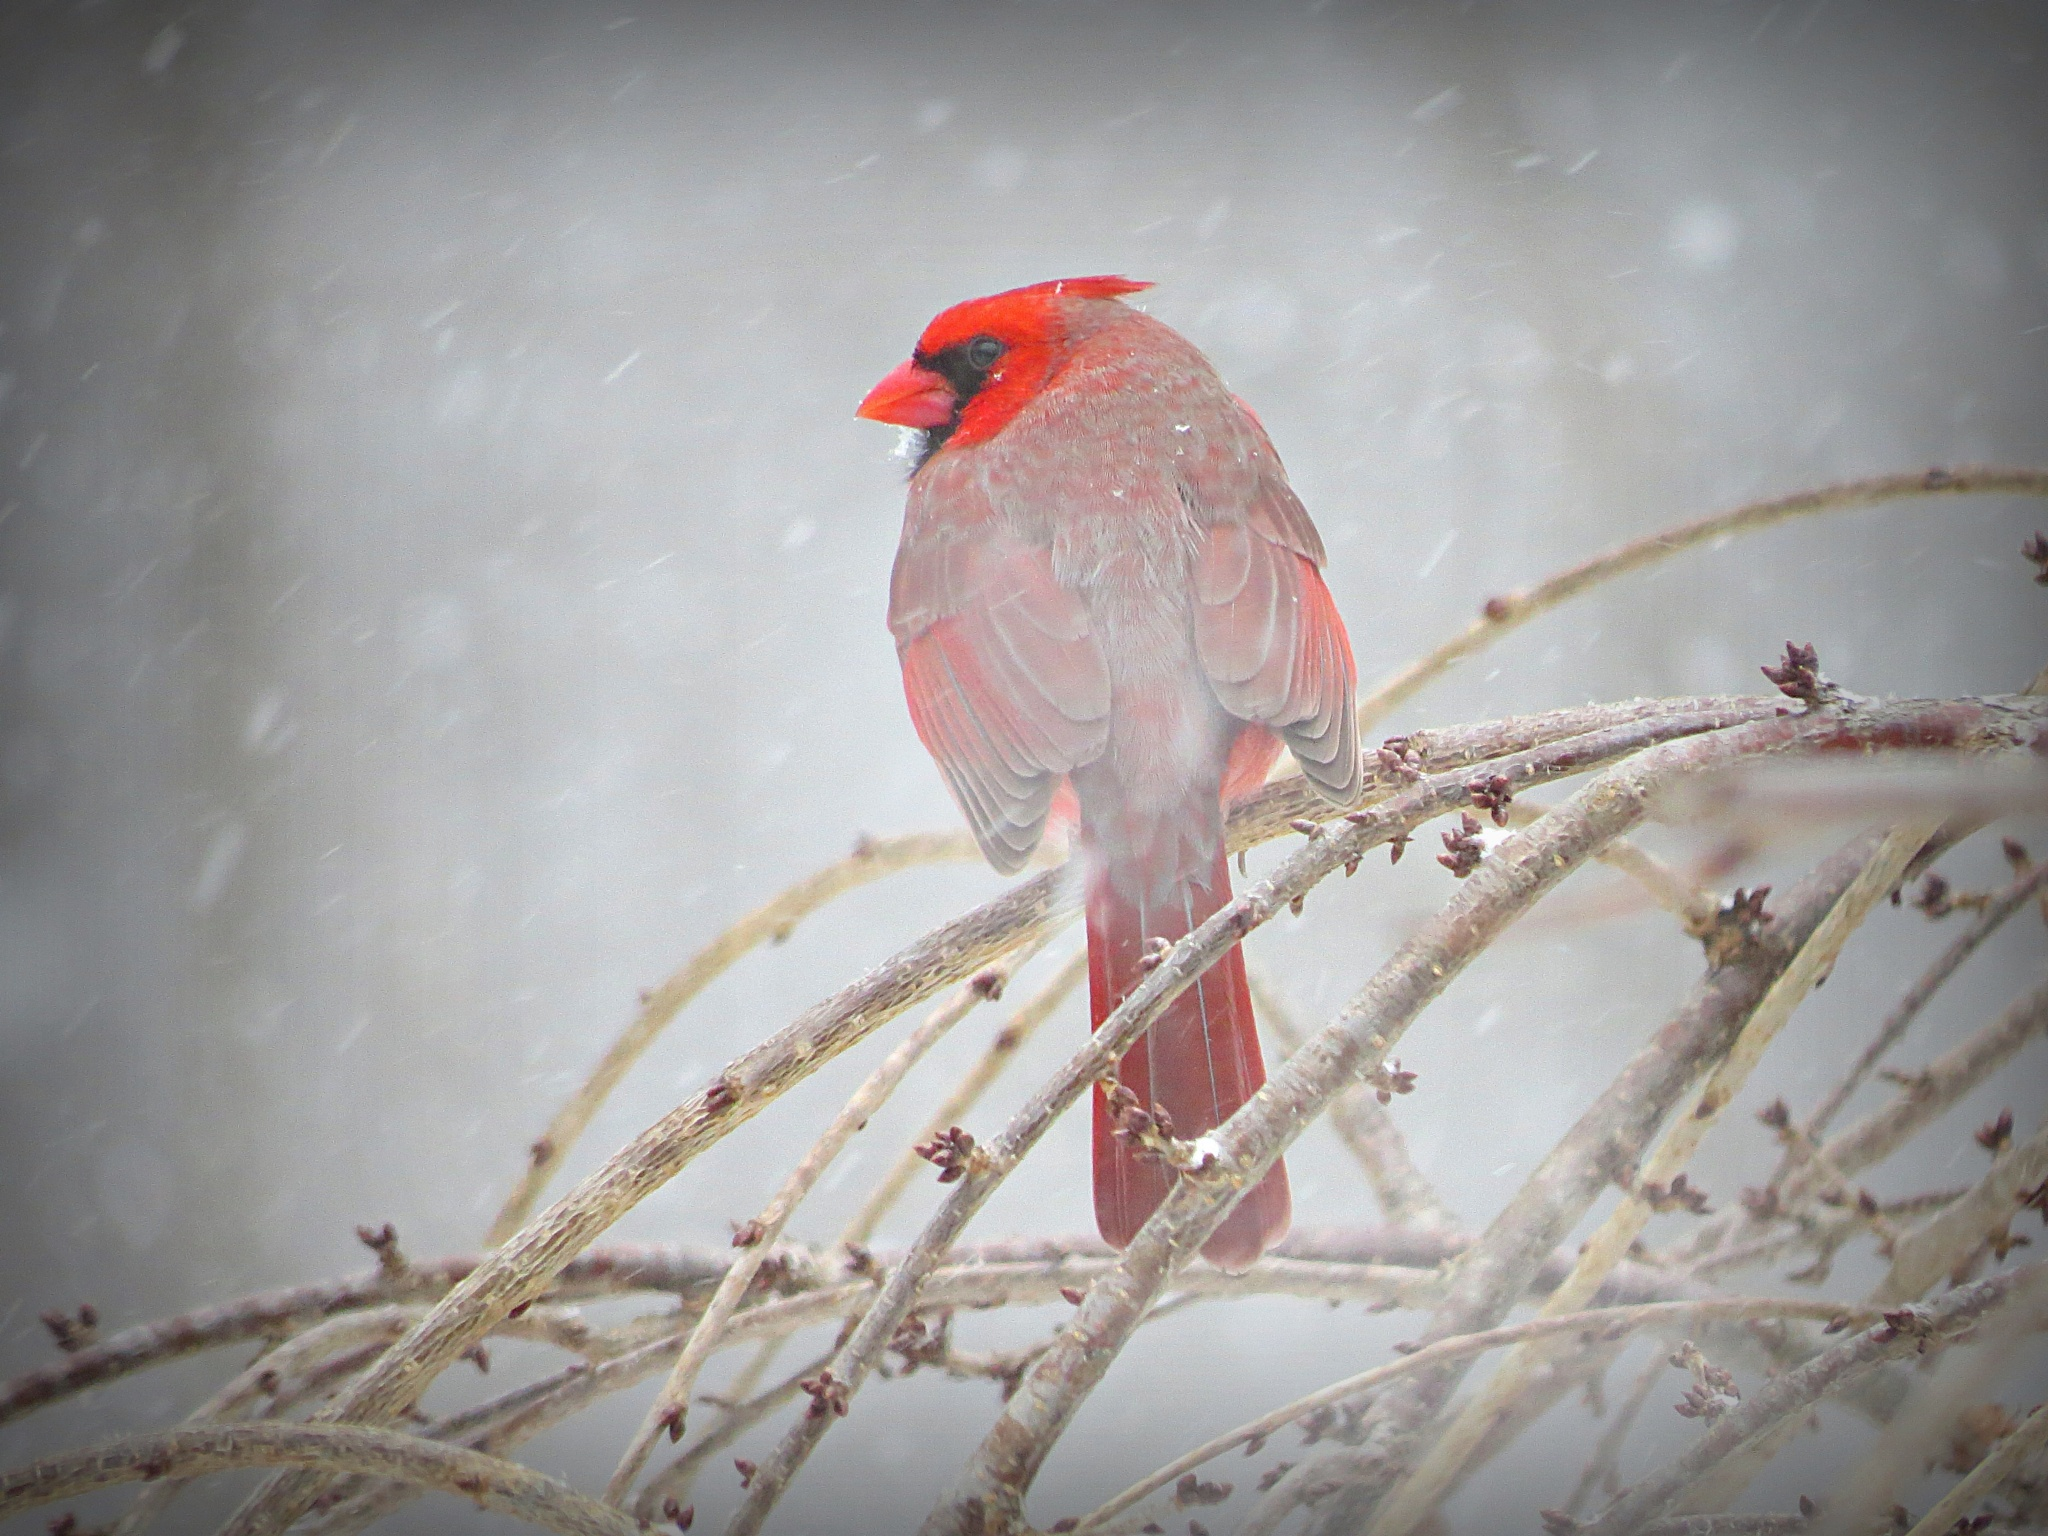 The Cardinal and the Snow... by captkweb